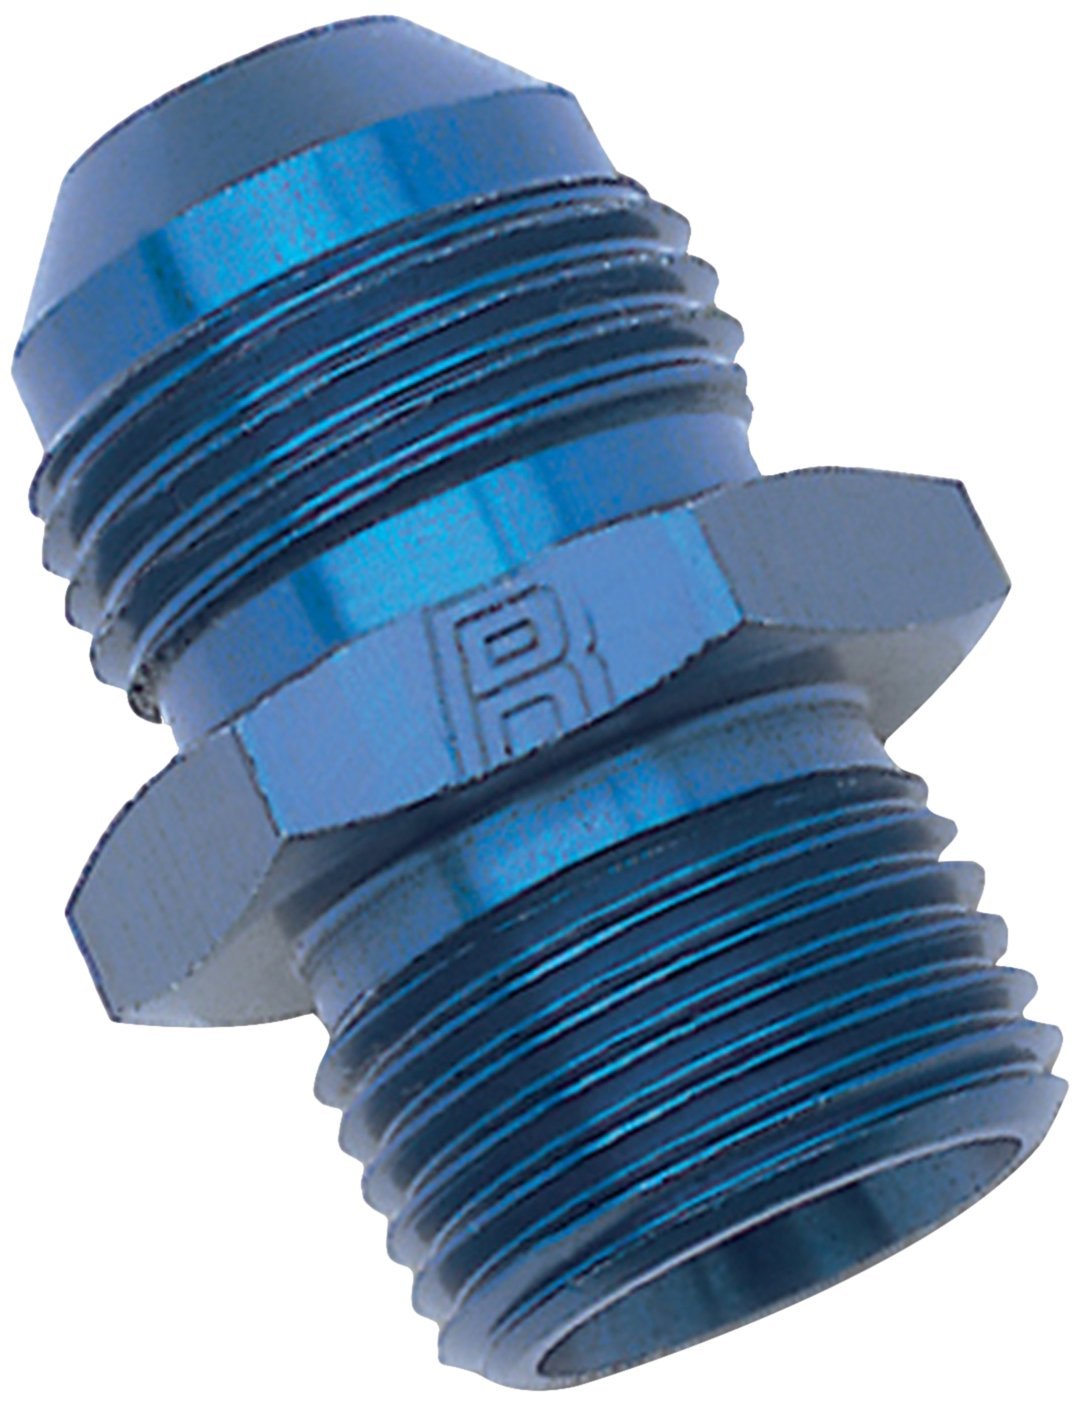 Russell RUS-670370 ADAPTER FITTING